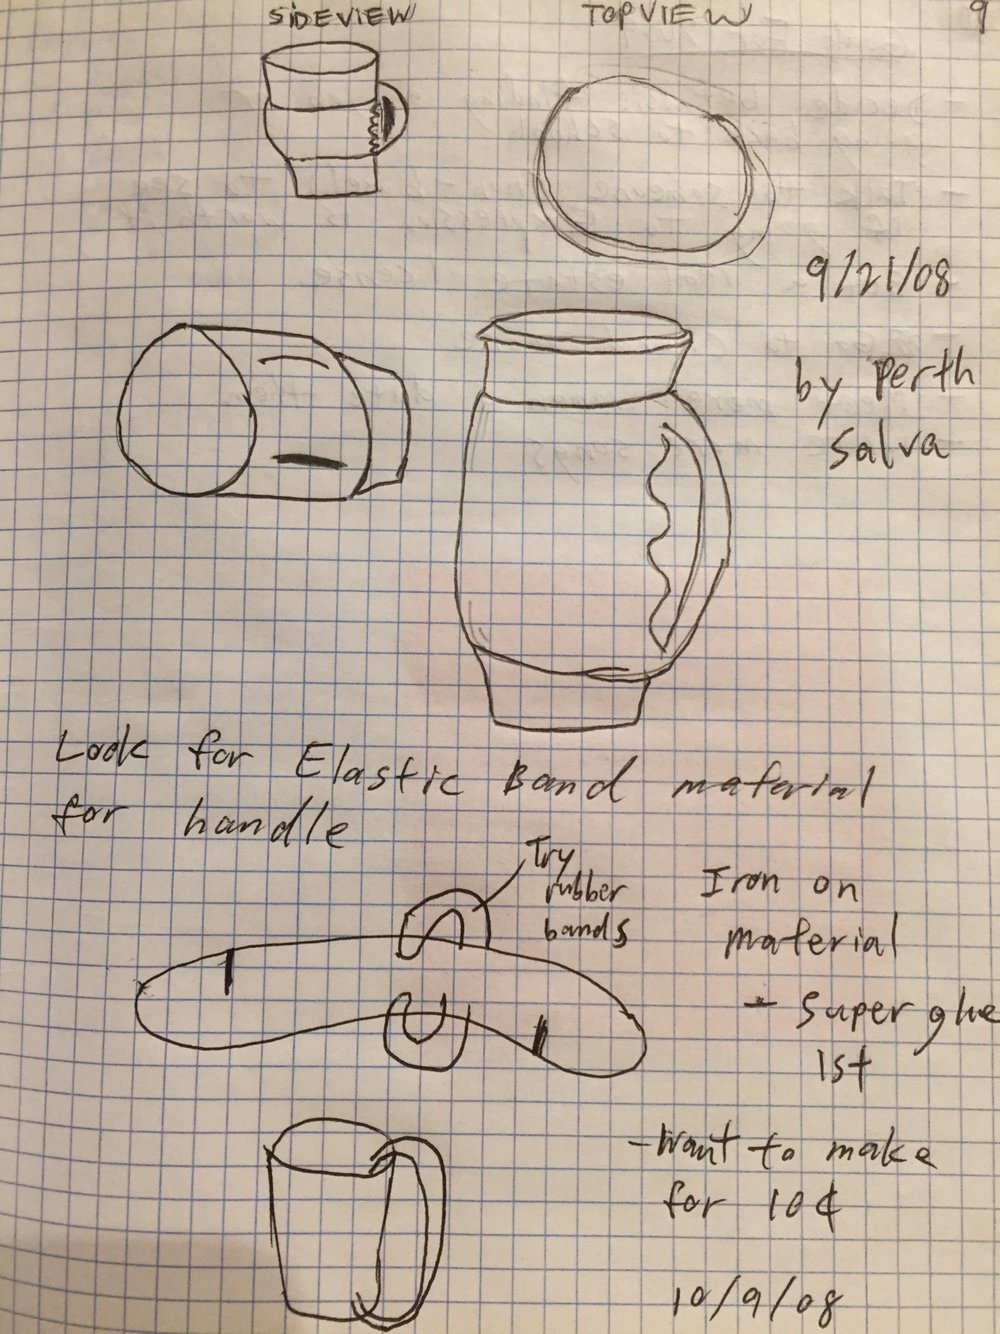 The only image I can find of the BevGrip. These are initial sketches from my notebook